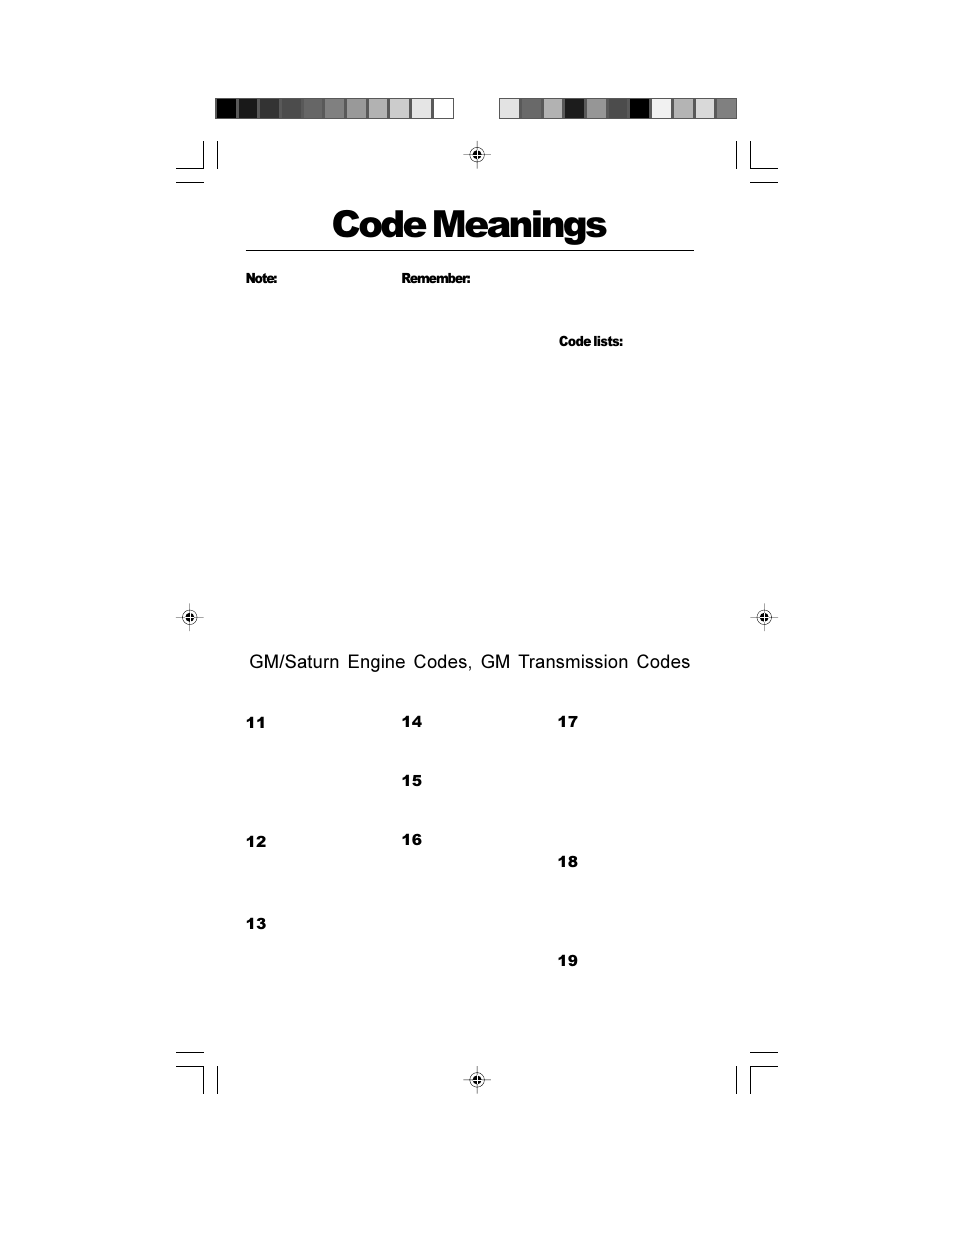 Code meanings, Gm/saturn engine codes, gm transmission